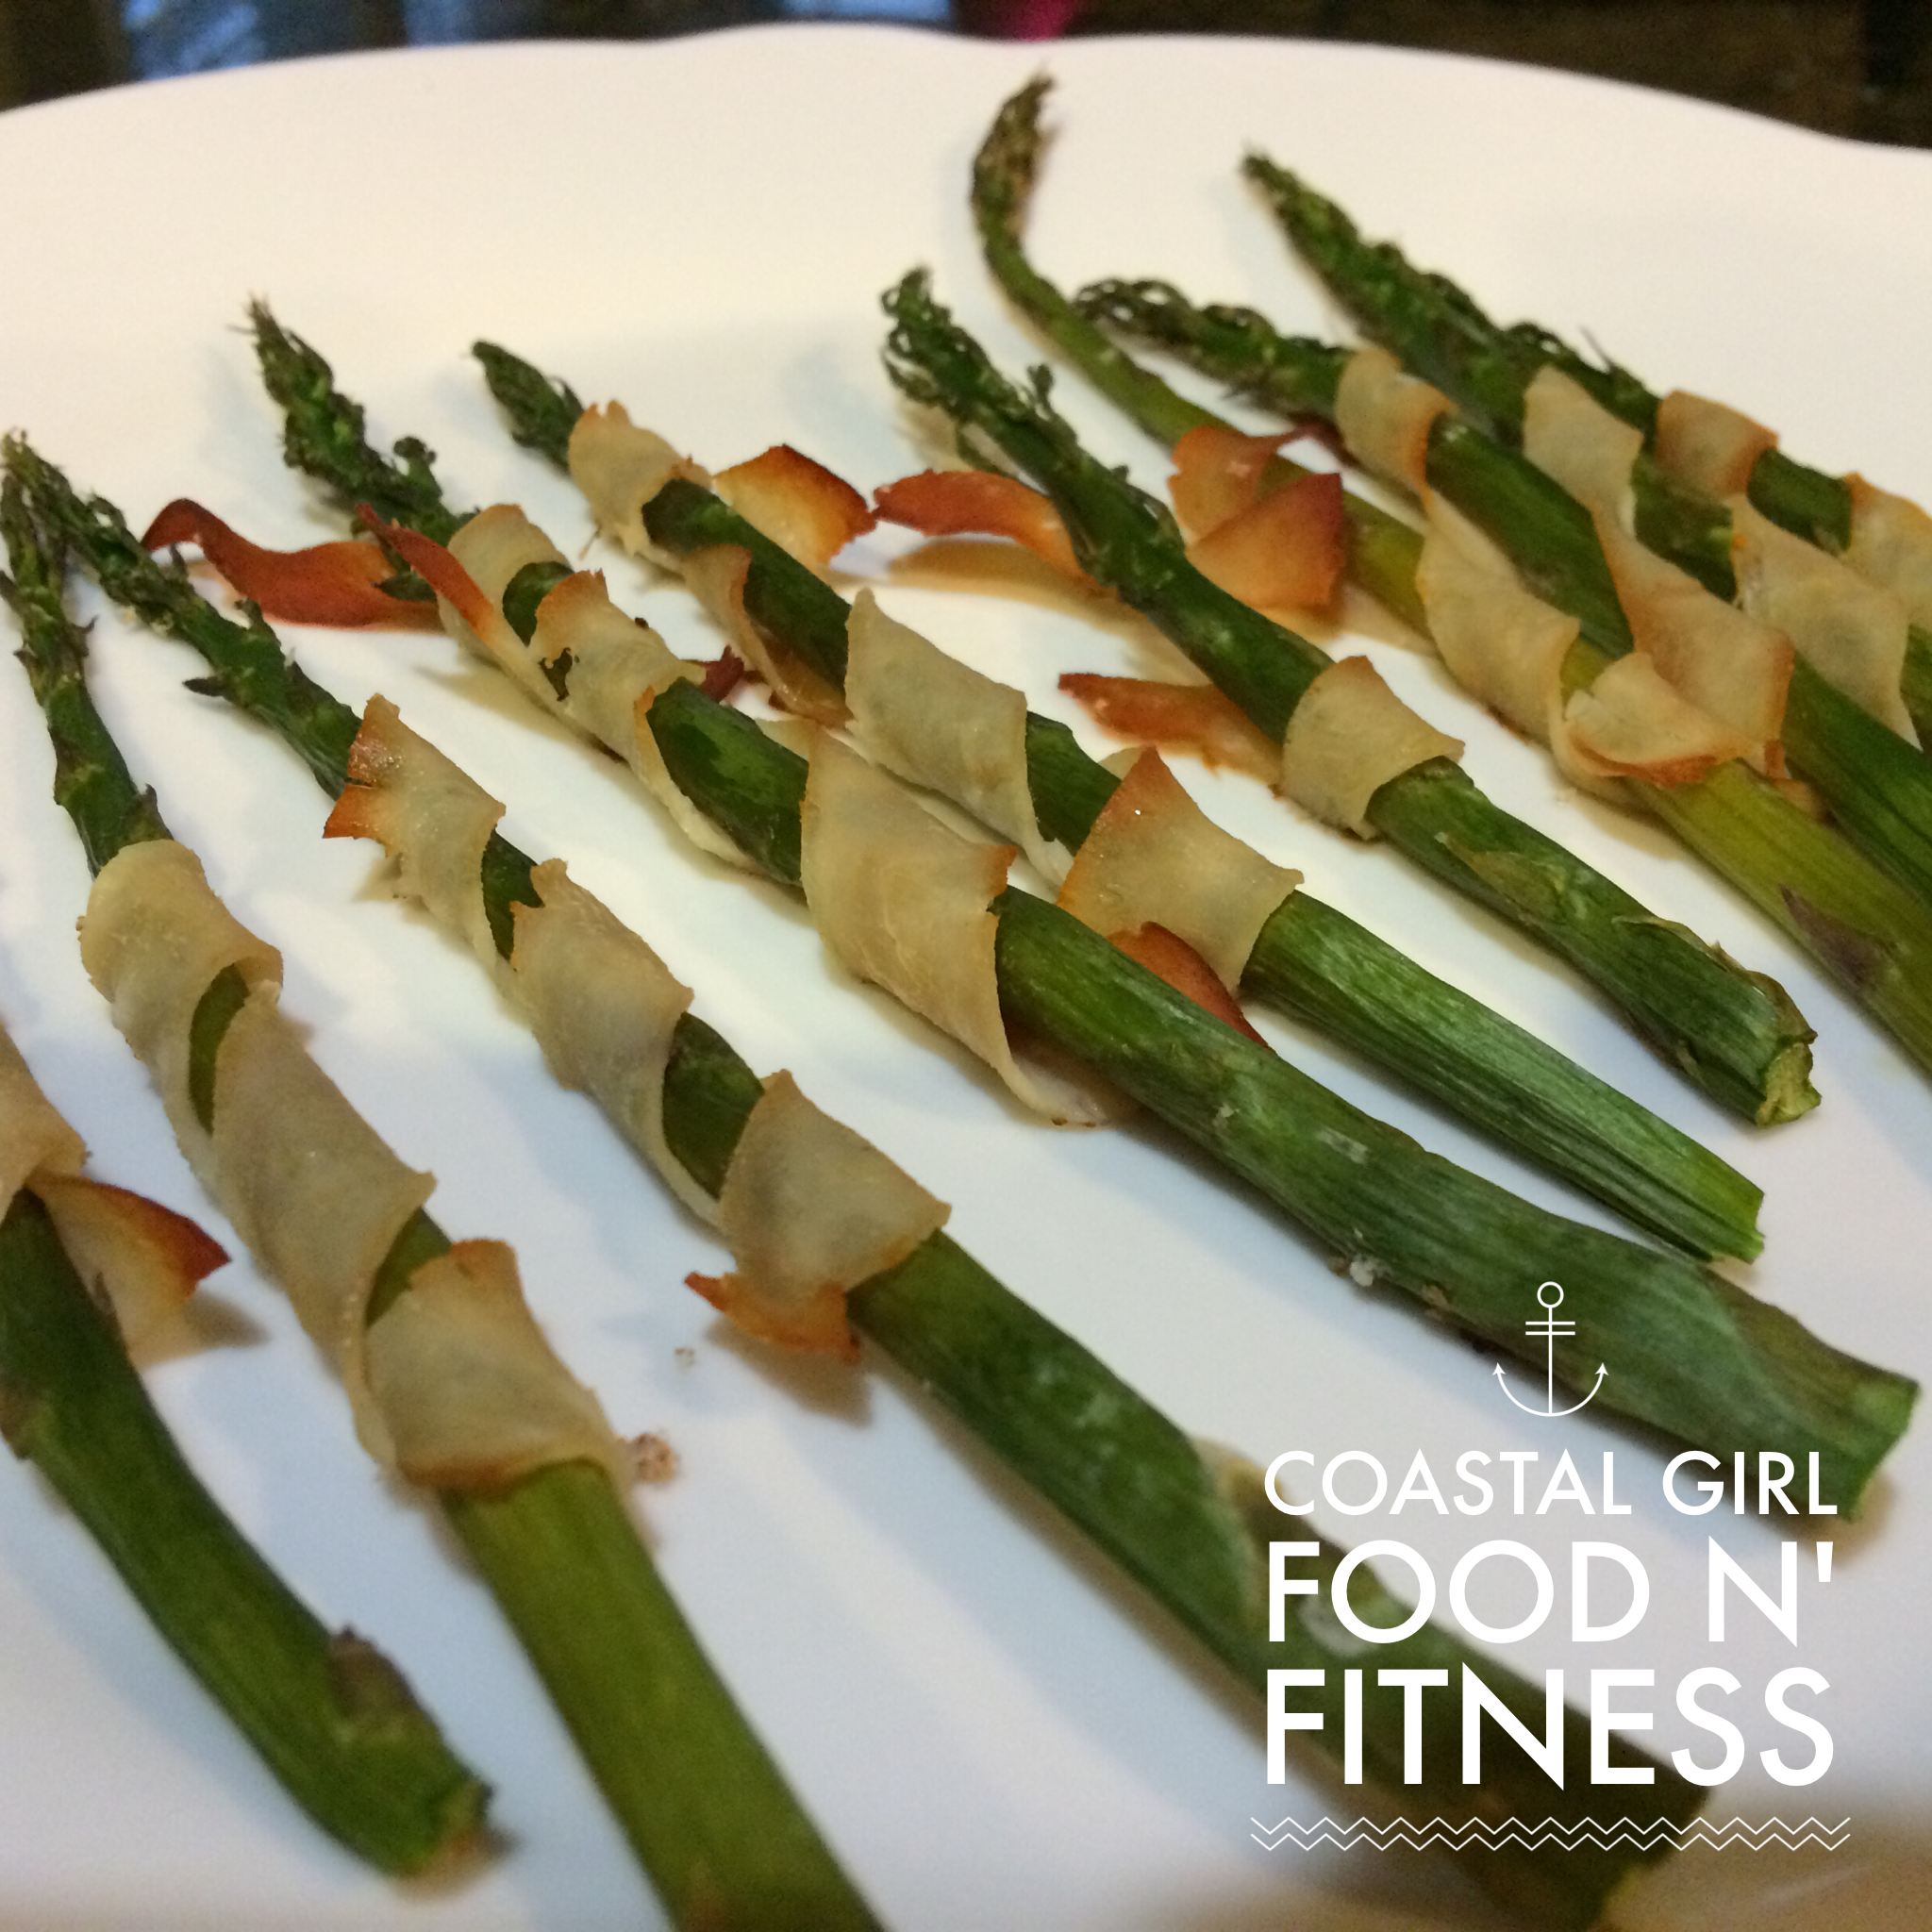 Turkey Wrapped Asparagus Spears: Swapping out the bacon for thin strips of smoked turkey breasts cleaned this appetizer up nicely without losing that smoky flavor